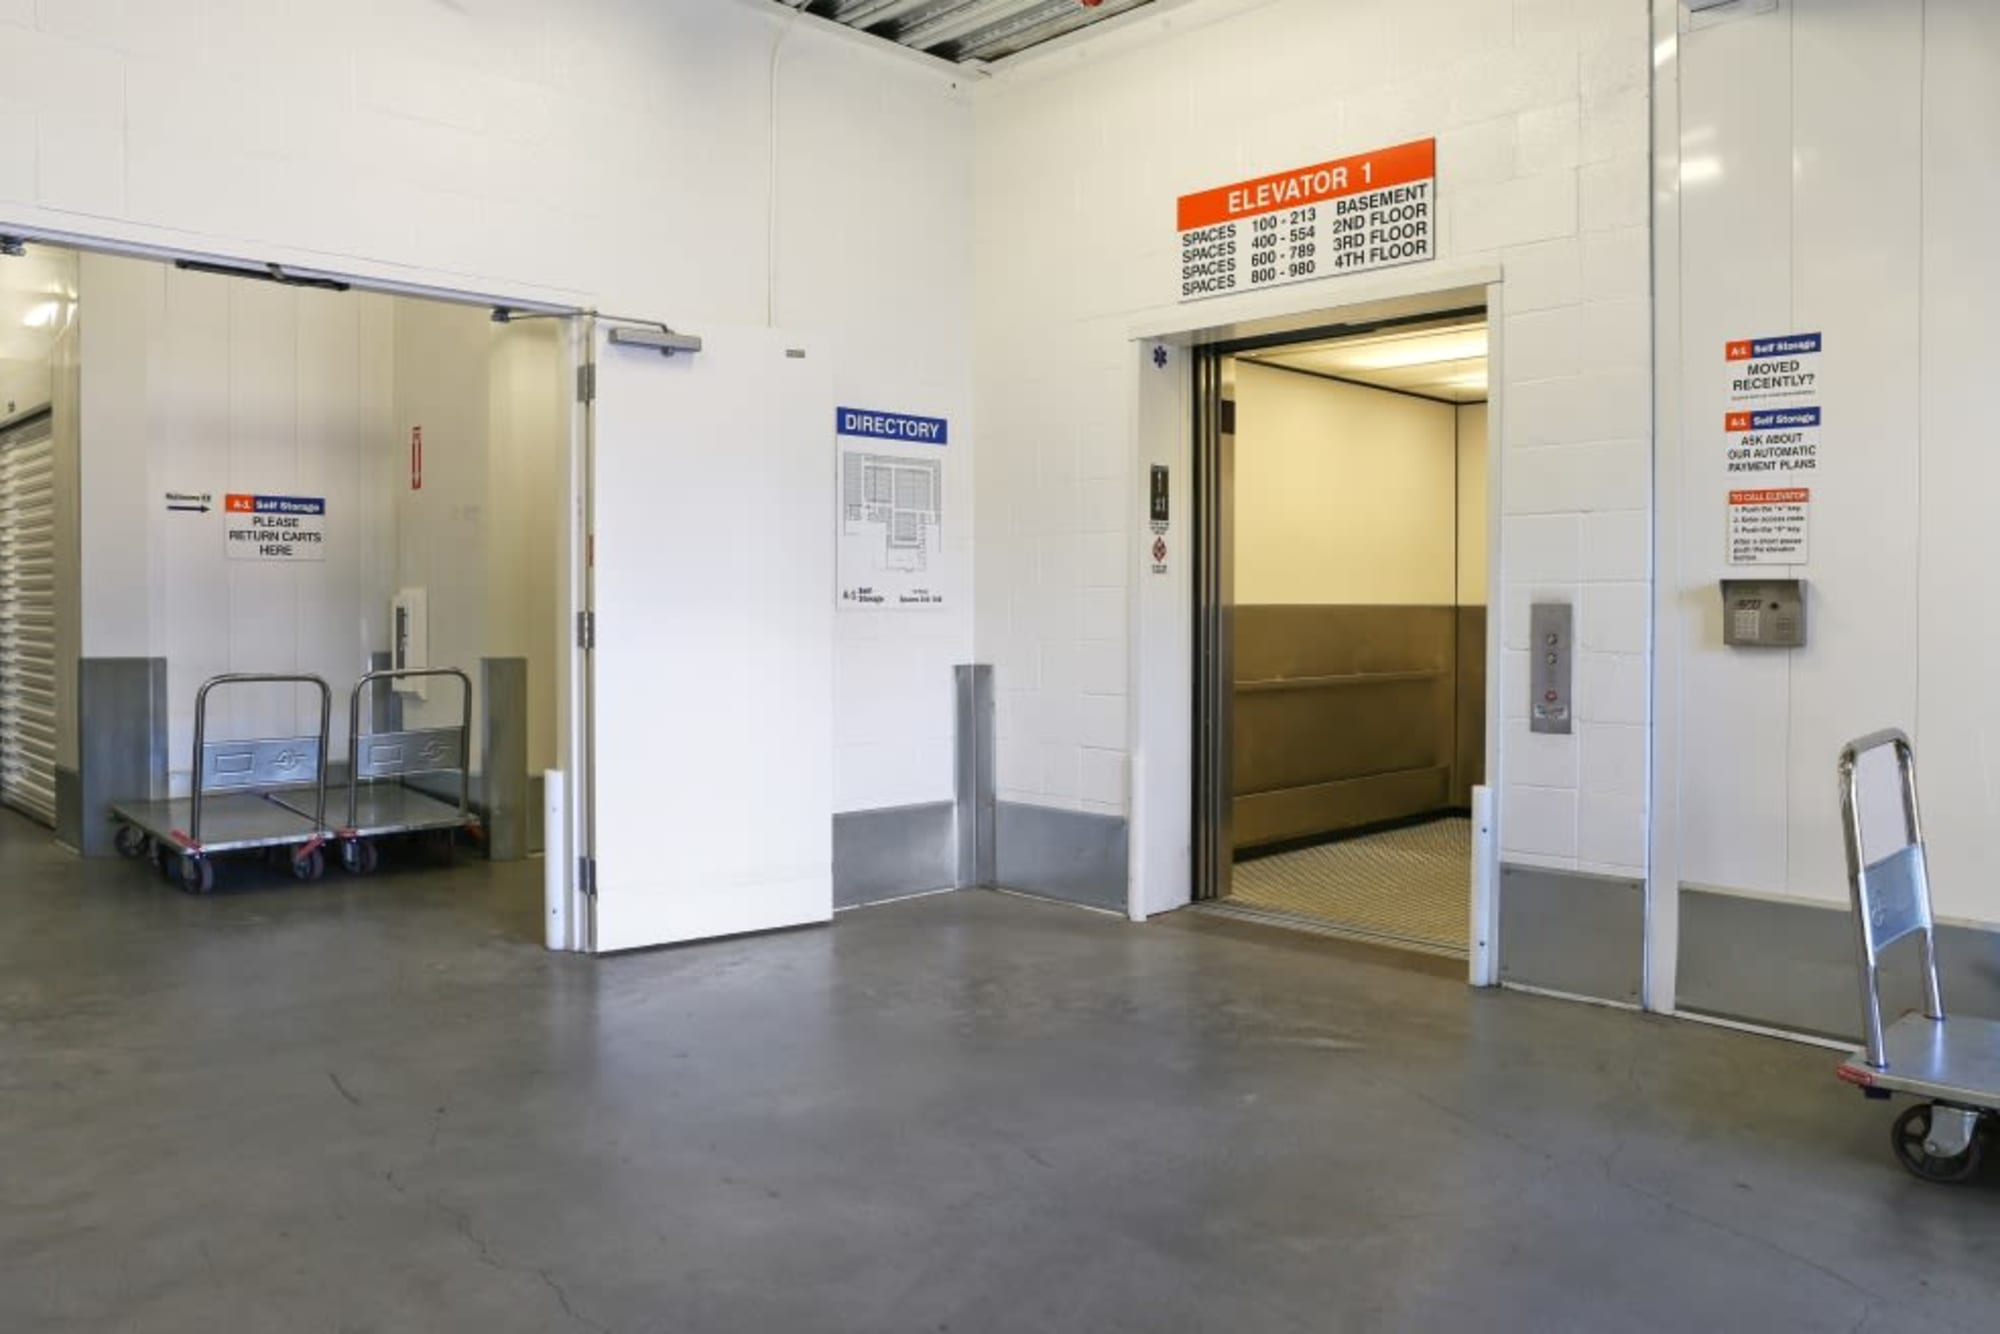 A-1 Self Storage's freight elevator and carts